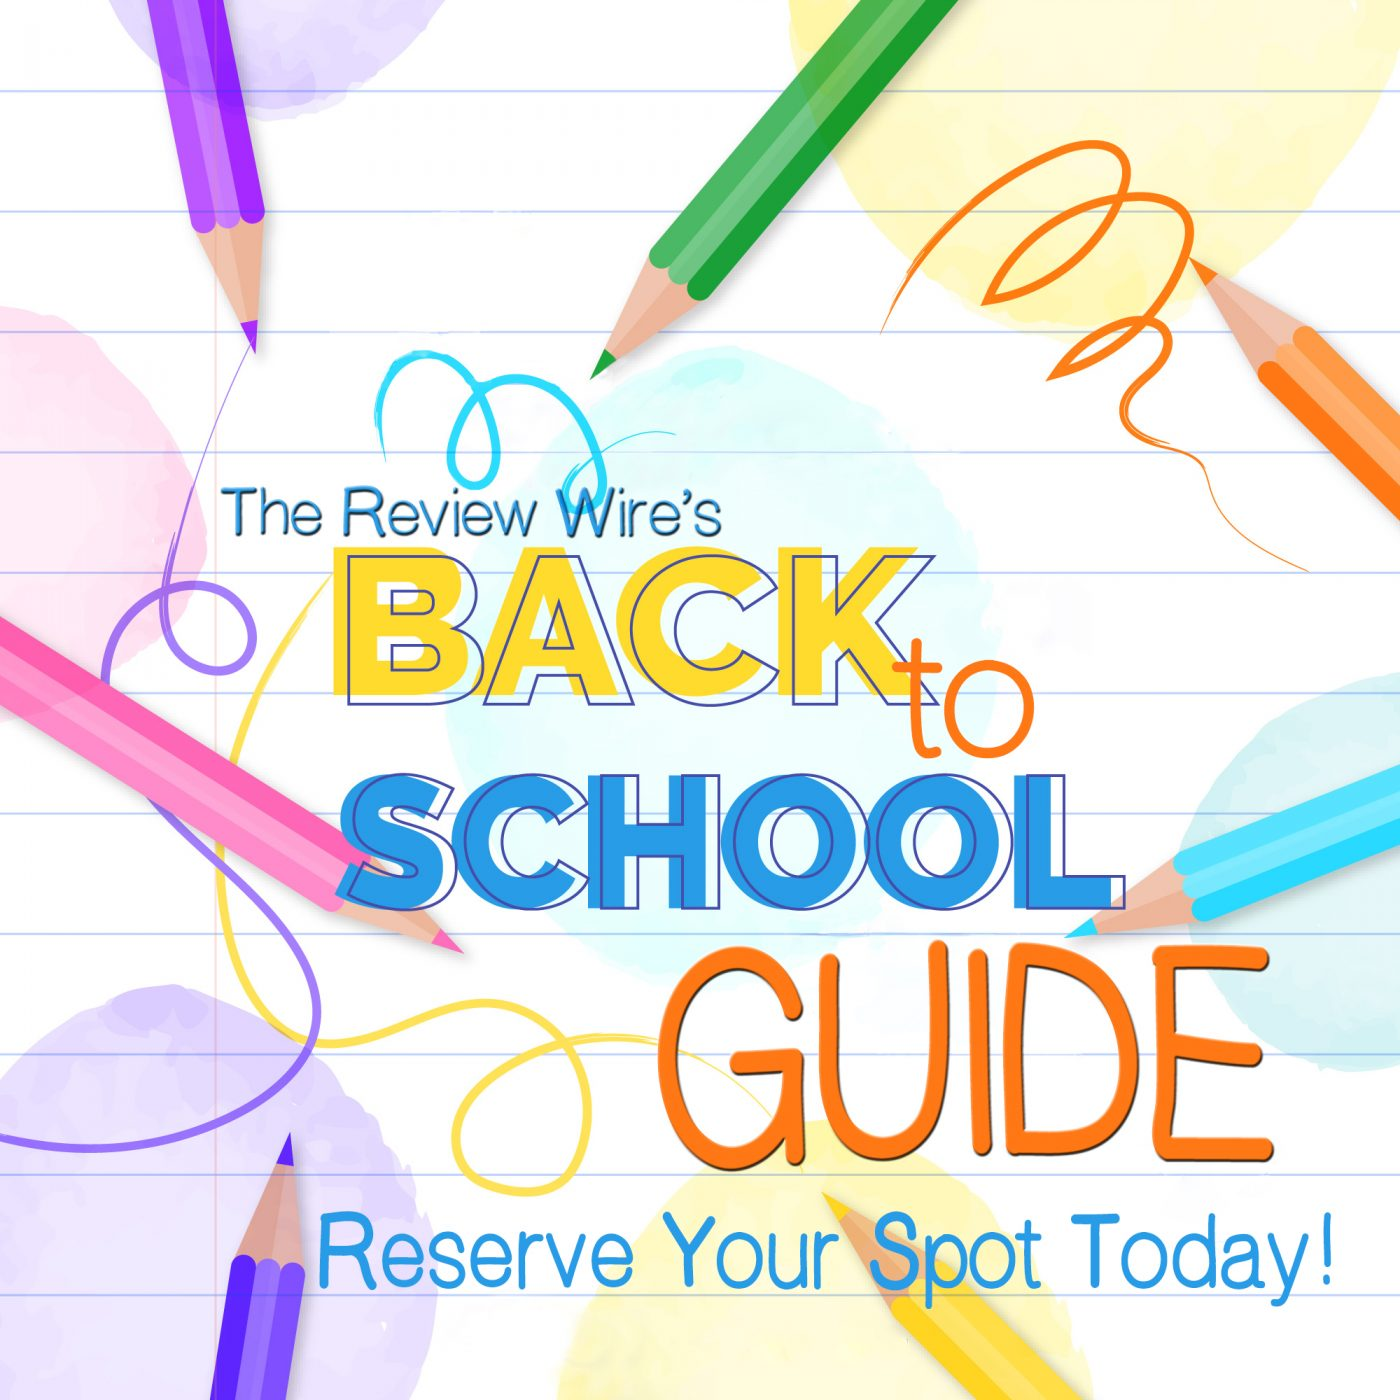 The Review Wire Back to School Guide Reserve Your Spot